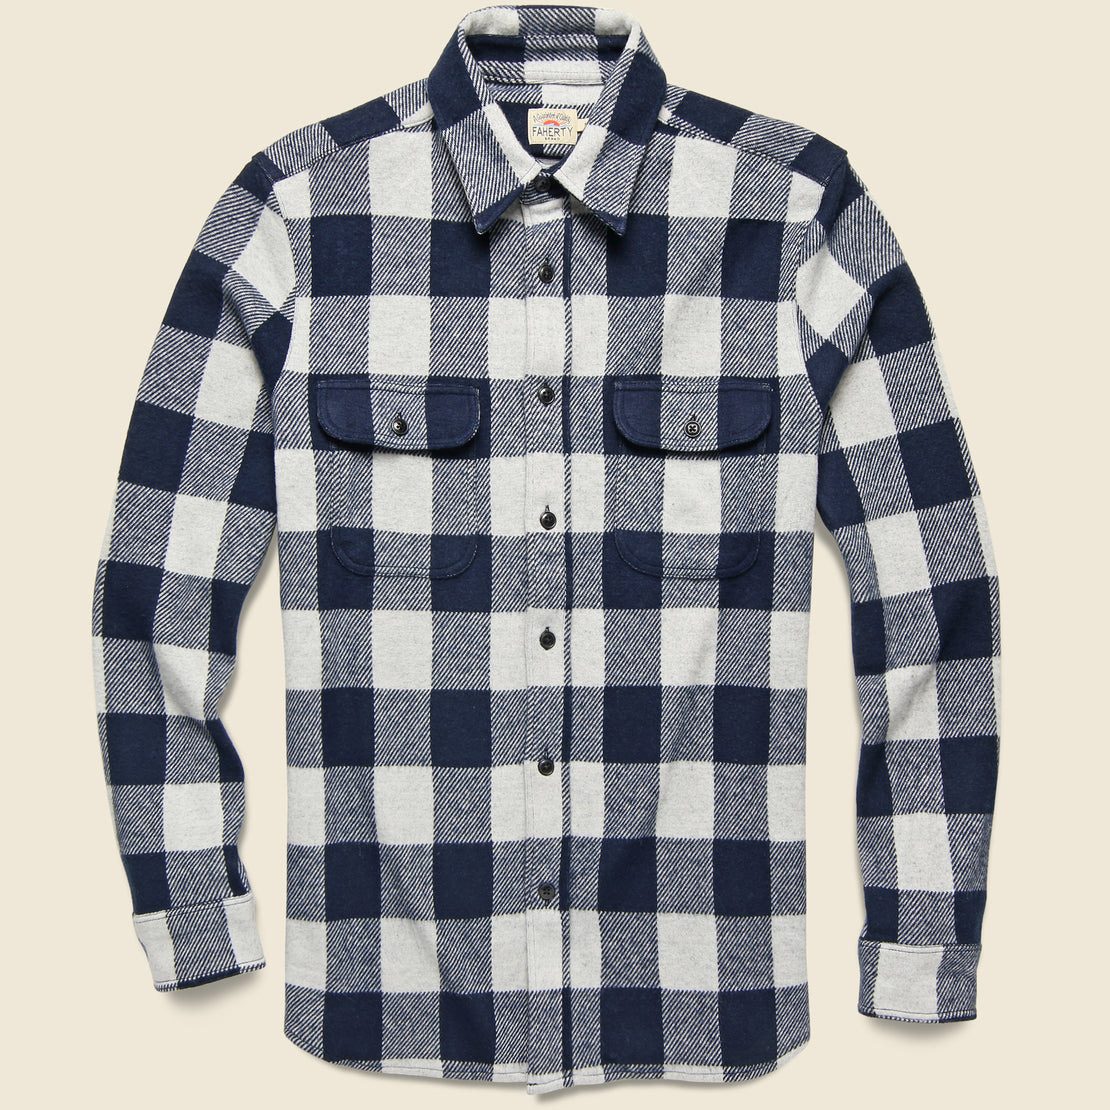 Faherty Legend Sweater Shirt - Arctic Buffalo